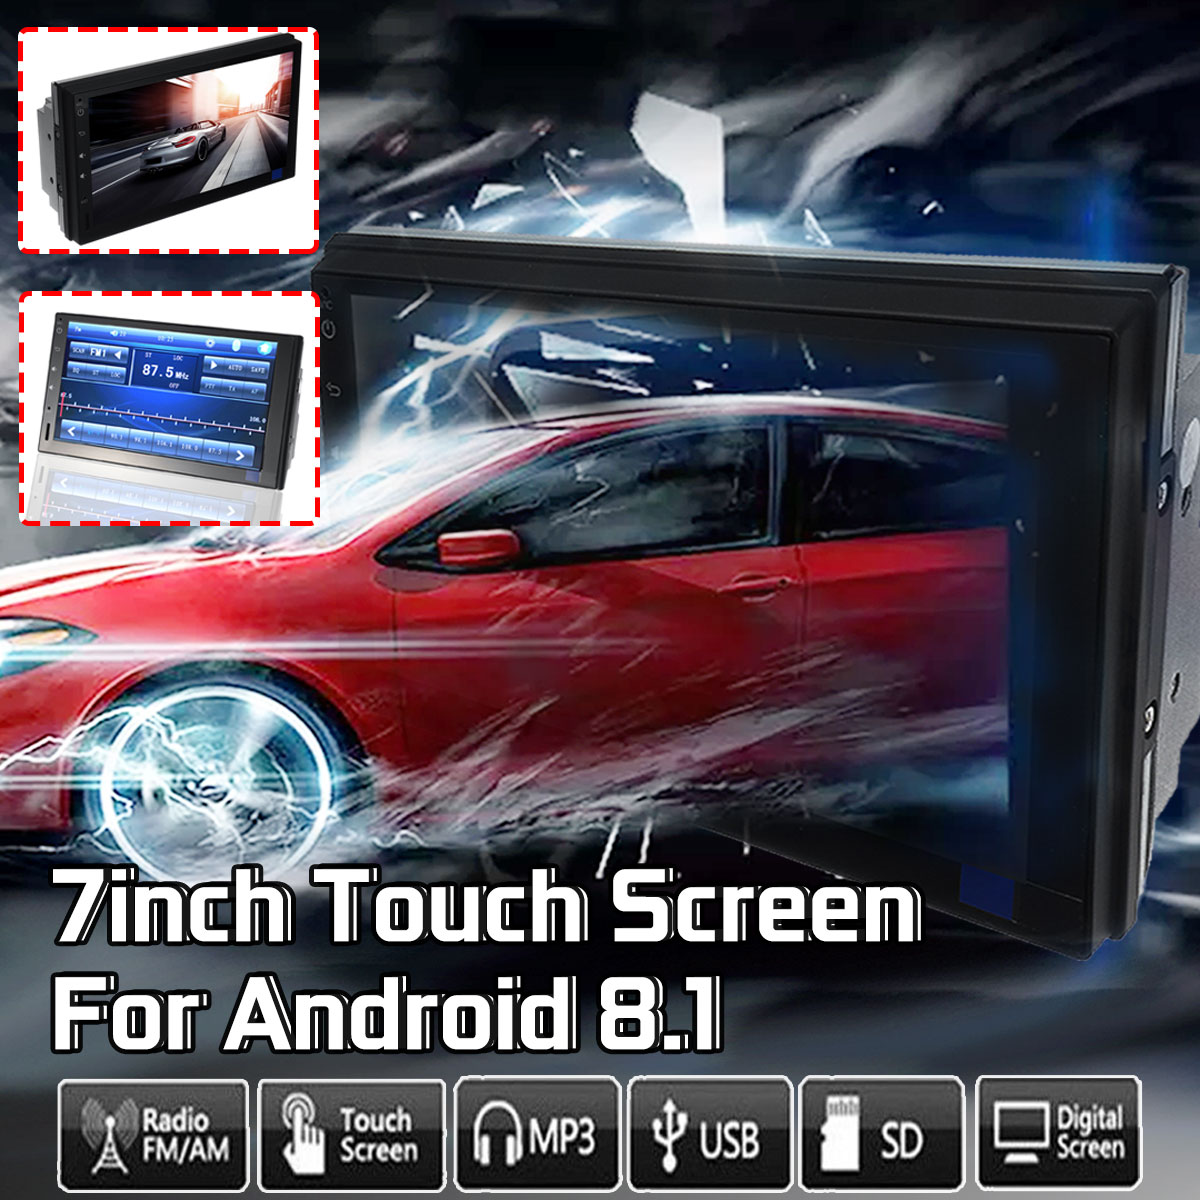 Android 8.1 Quad Core 4K 7 2 Din Car MP5 Player bluetooth WIFI GPS DVBT DAB Touchable Screen Car Radio Car Multimedia PlayerAndroid 8.1 Quad Core 4K 7 2 Din Car MP5 Player bluetooth WIFI GPS DVBT DAB Touchable Screen Car Radio Car Multimedia Player